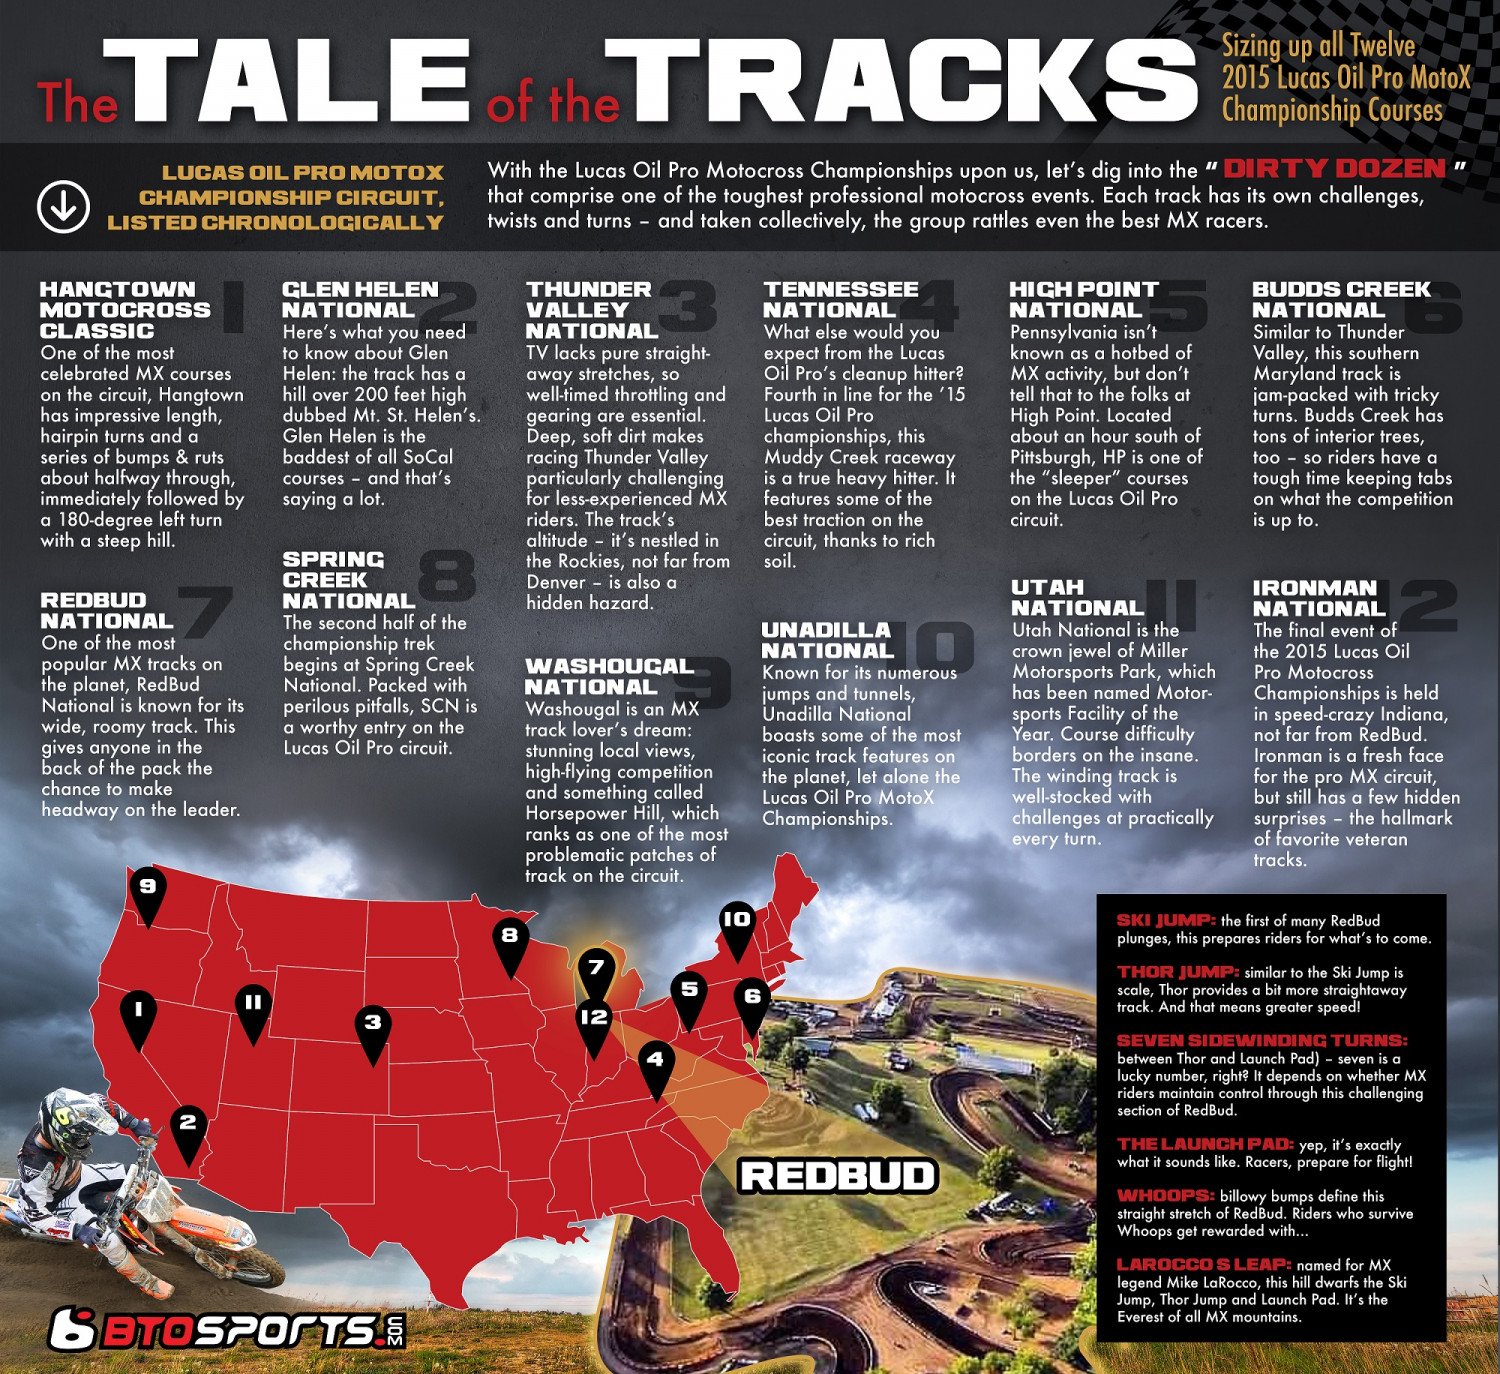 The Tale of the Tracks Infographic